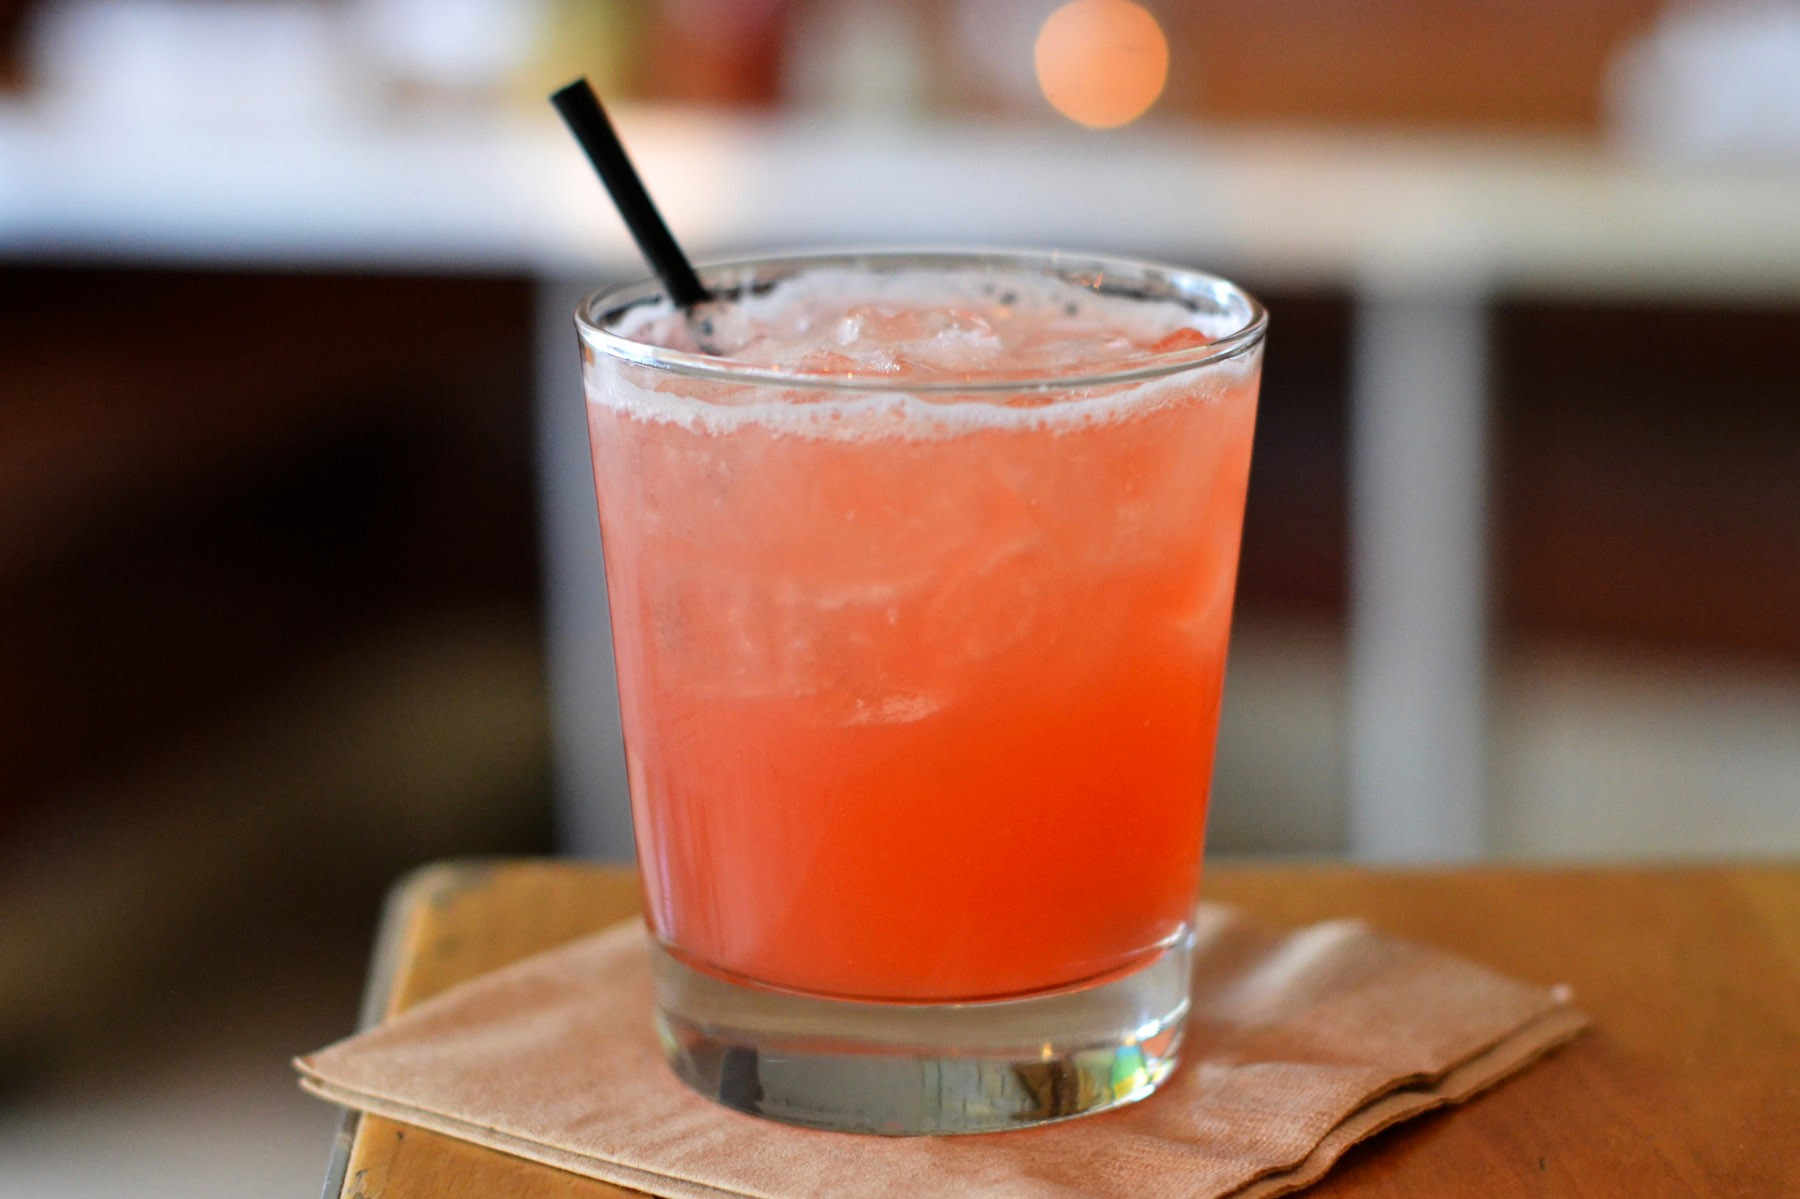 The Urban Sombrero with pineapple infused Campari, tequila, lime, and agave.